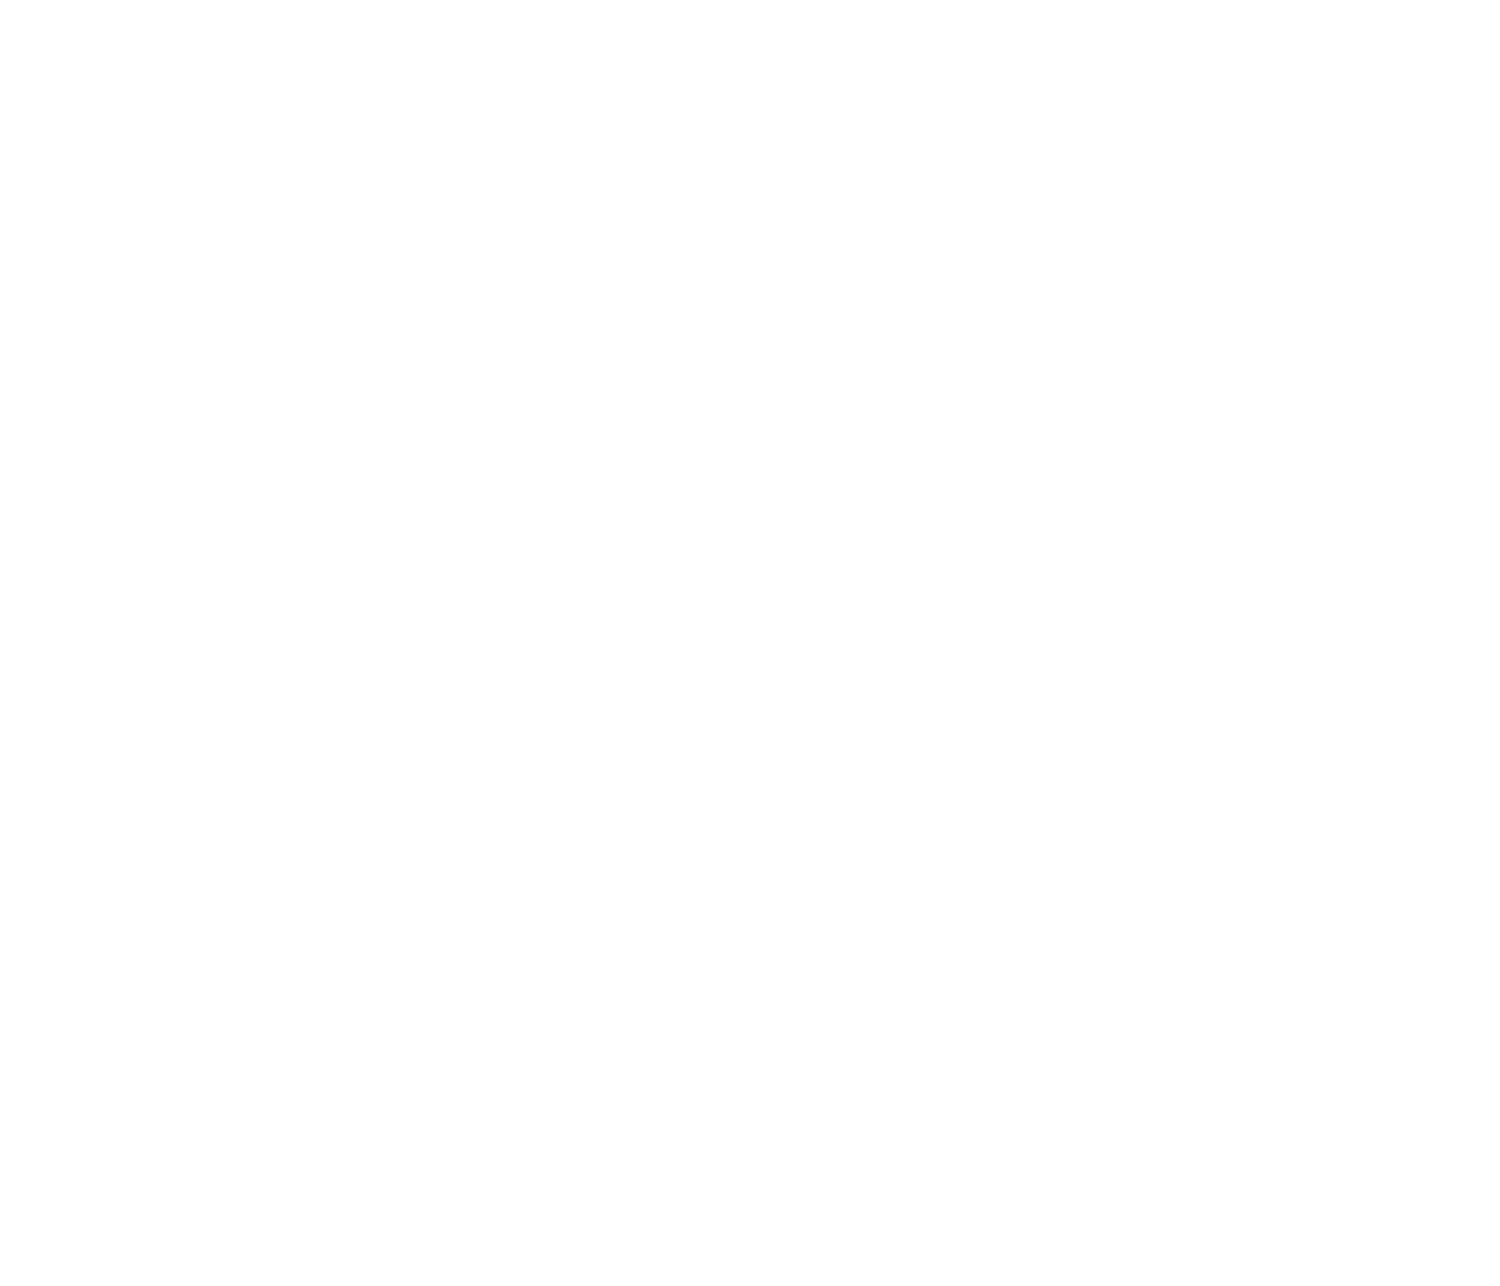 THE PEACOCK EVENTS